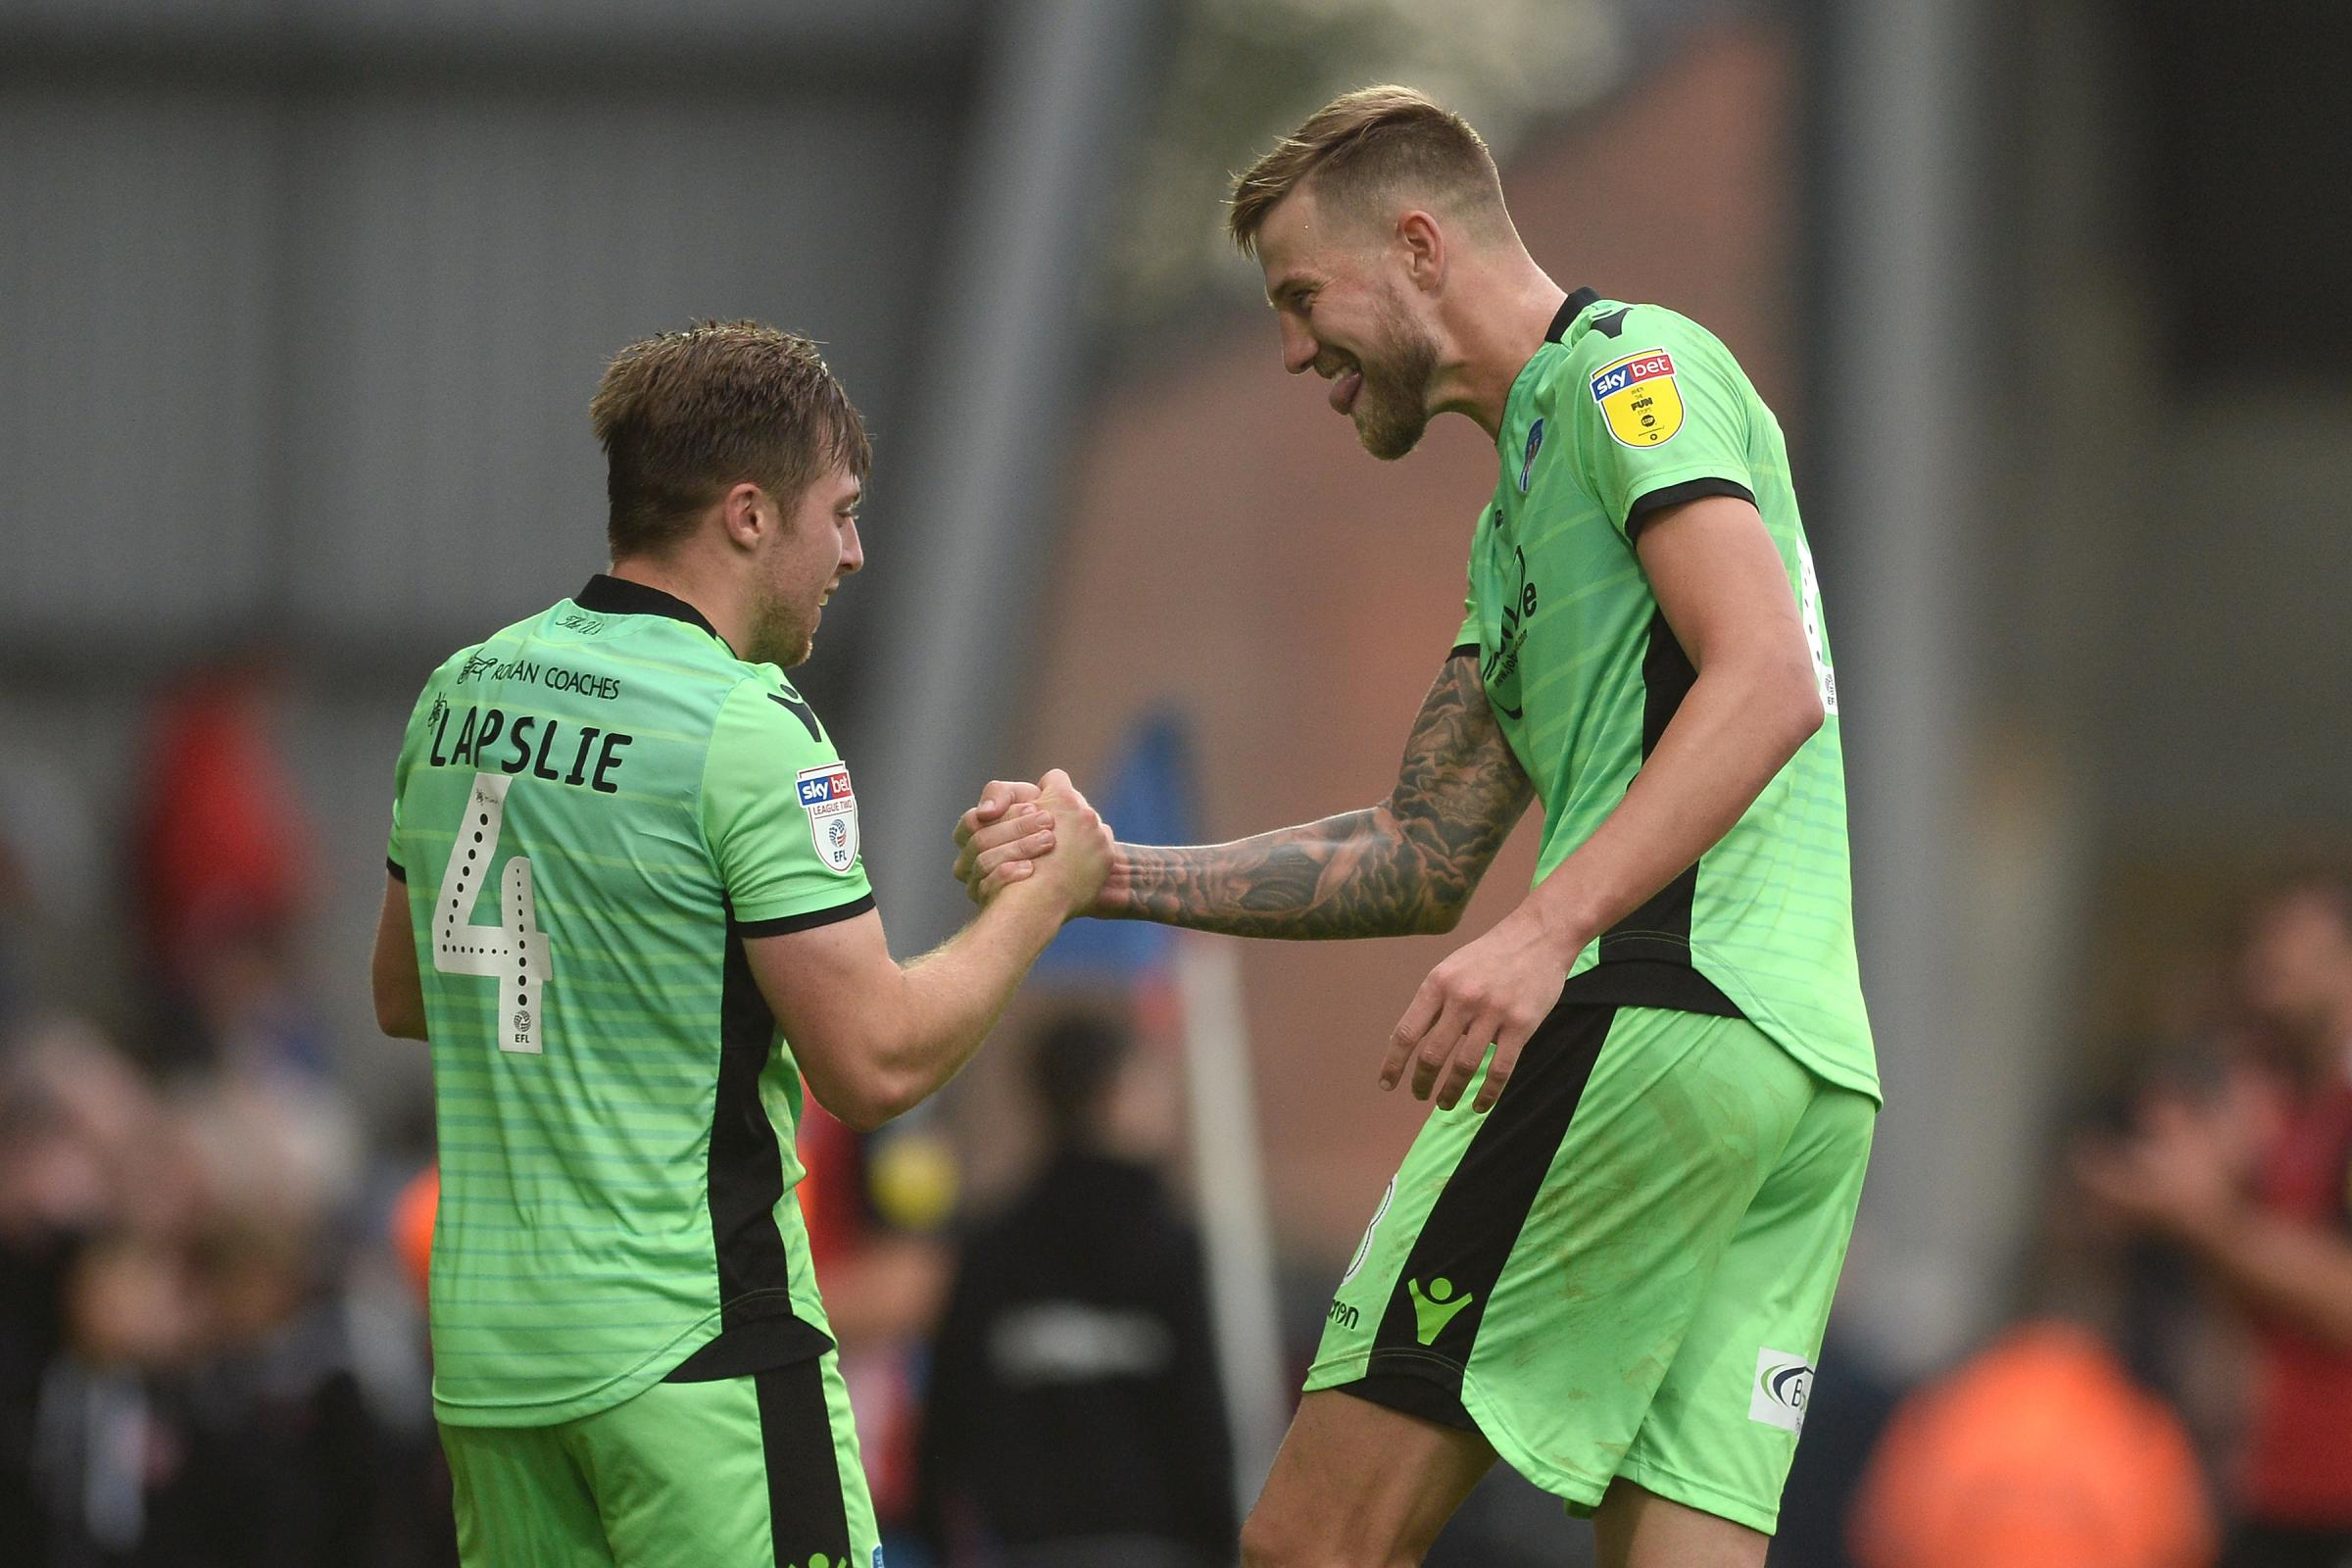 Harry Pell of Colchester United and Tom Lapslie of Colchester United celebrates at the final whistle - Morecambe vs. Colchester United - Sky Bet League Two - Globe Arena, Morecambe - 19/10/2018 - Photo by: Richard Blaxall.